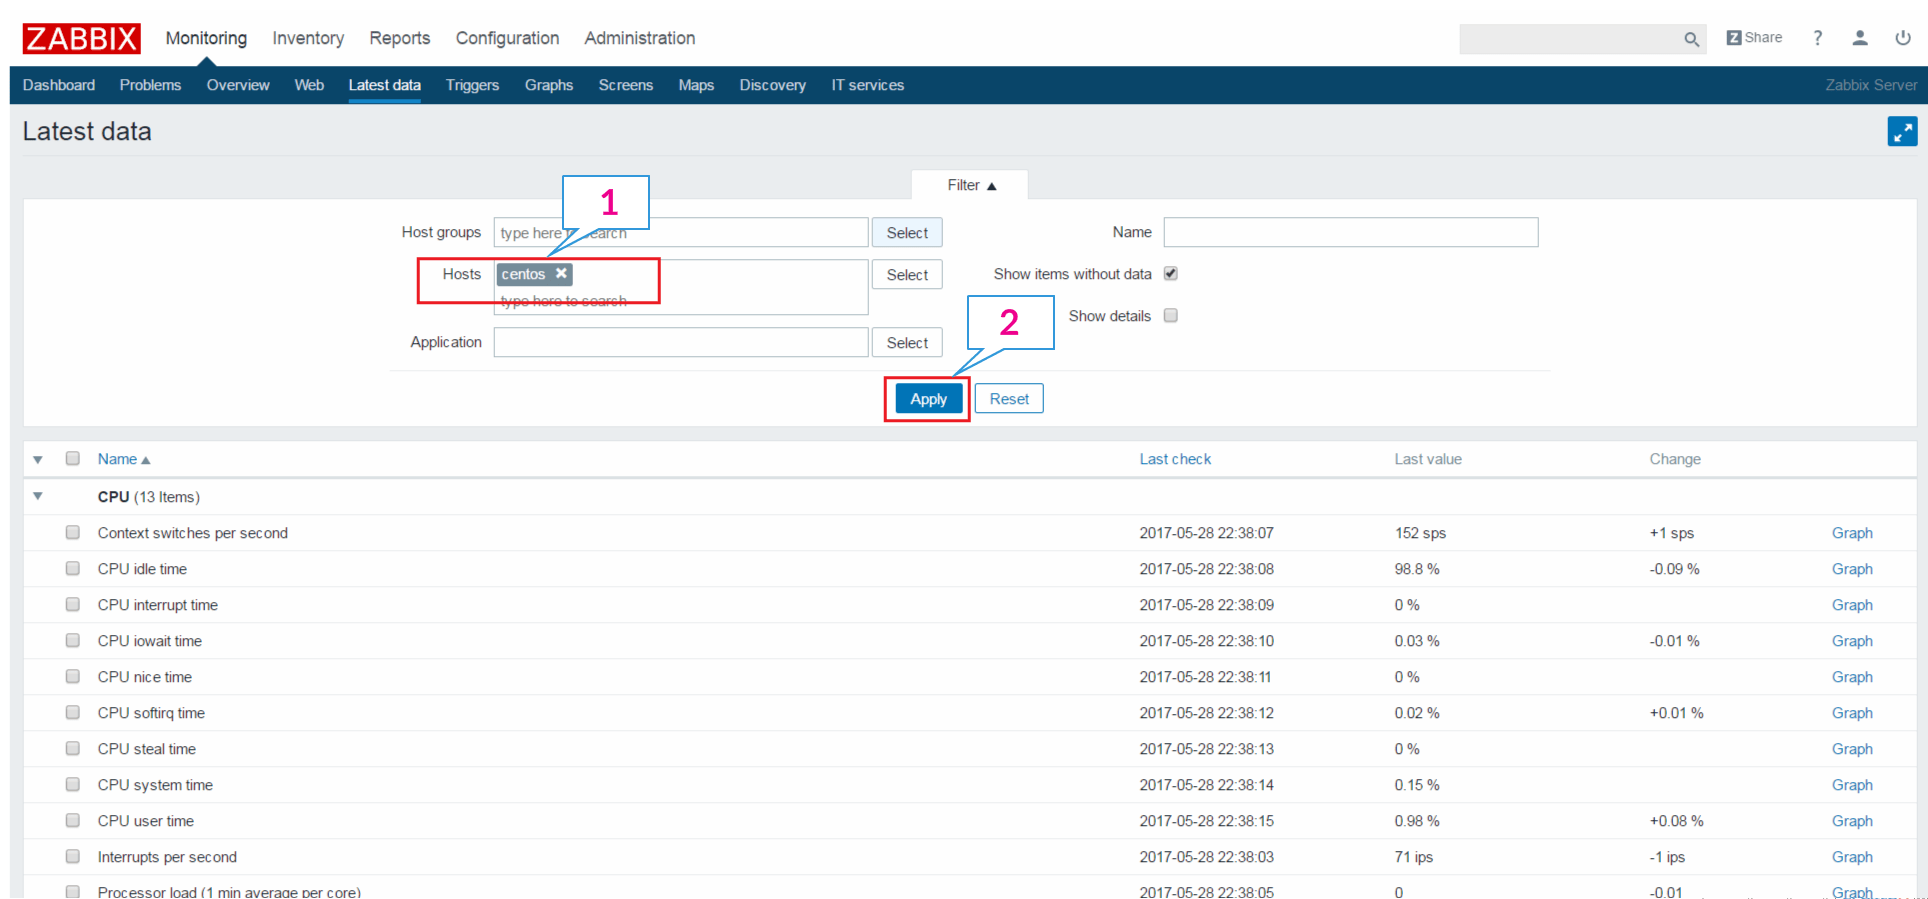 How to Add Remote Linux Host to Zabbix Server for Monitoring - Linux